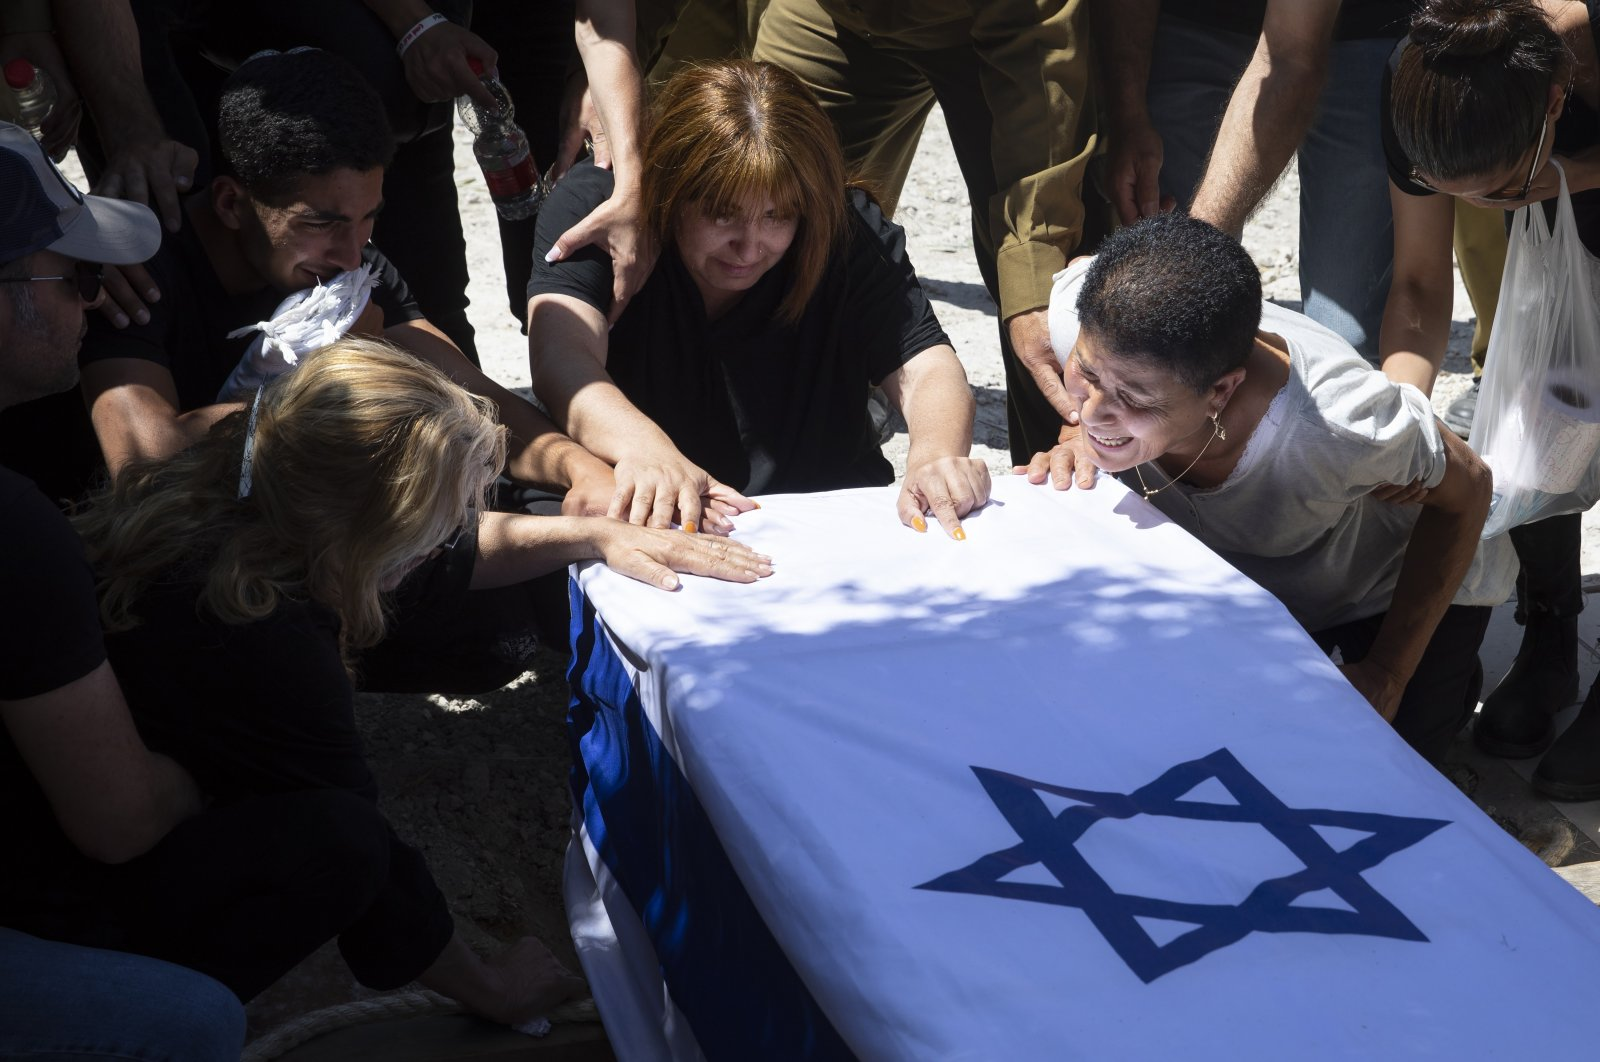 Relatives of Israeli soldier Omer Tabib, 21, mourn during his funeral at the cemetery in the northern Israeli town of Elyakim, Thursday, May 13, 2021. (AP Photo)